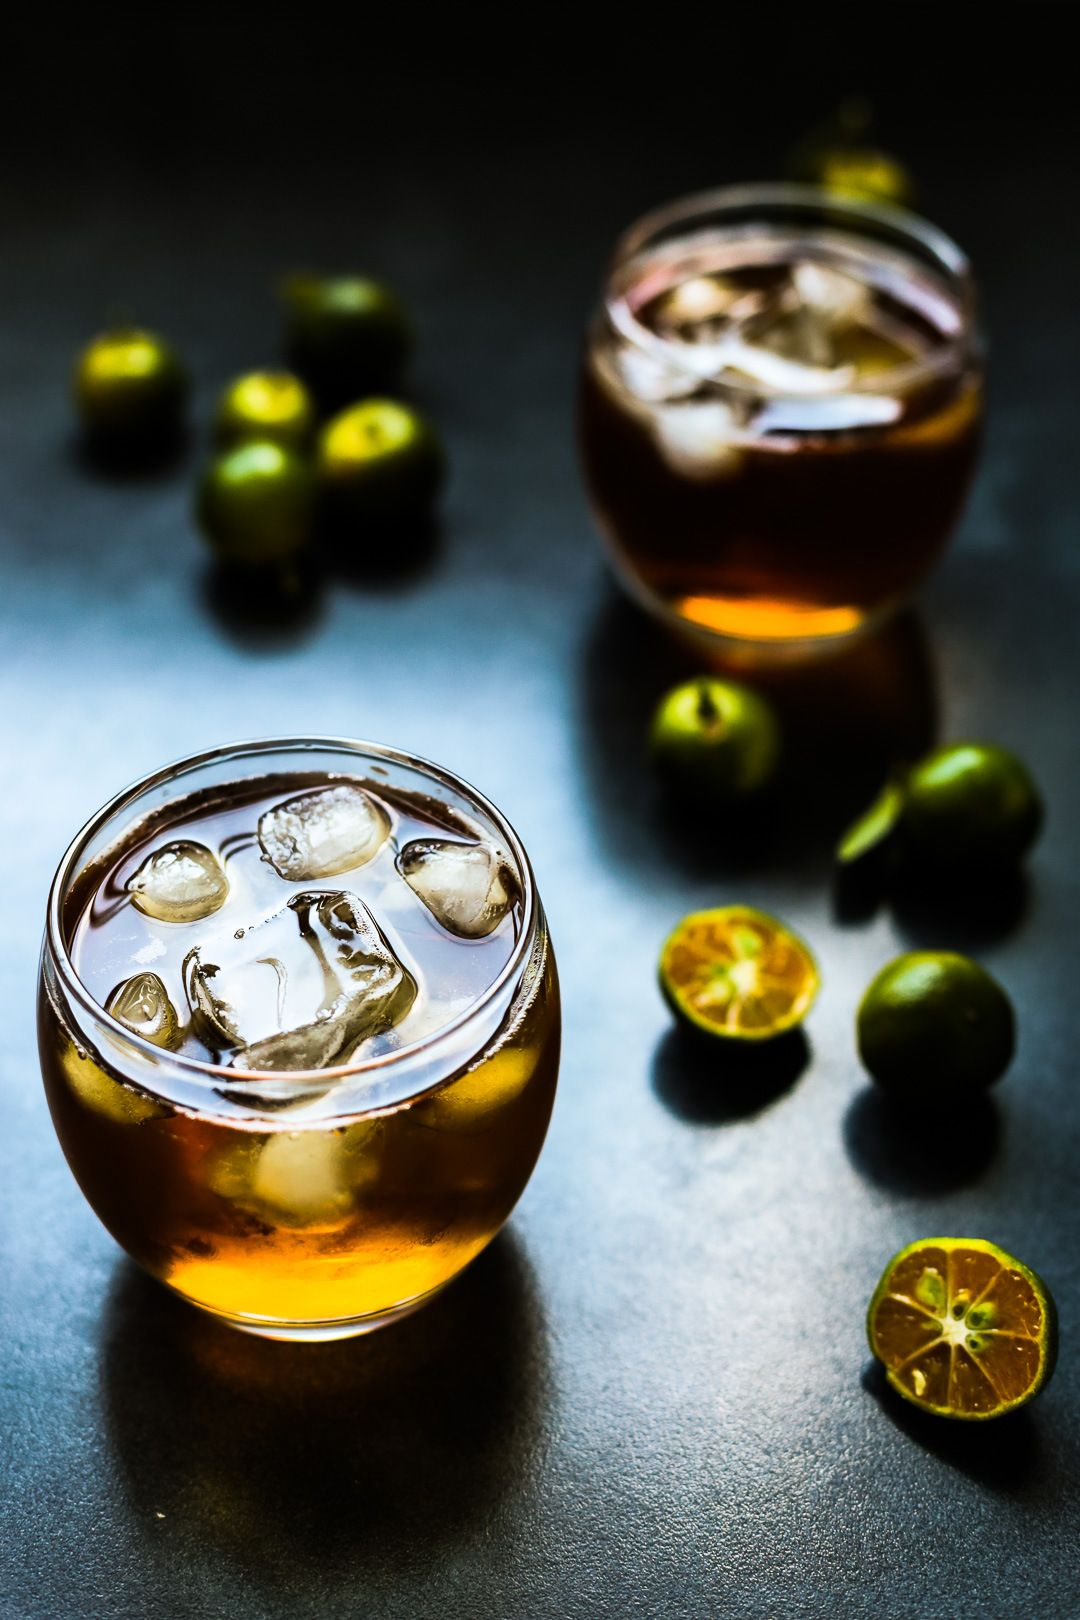 Honey Calamansi Iced Tea is a drink made out of tea infused with calamansi and honey then served with lots of ice. It similar to the ice lemon tea but instead of lemons we use calamansi fruit which is more fruity in flavour but still give that good sour bite.